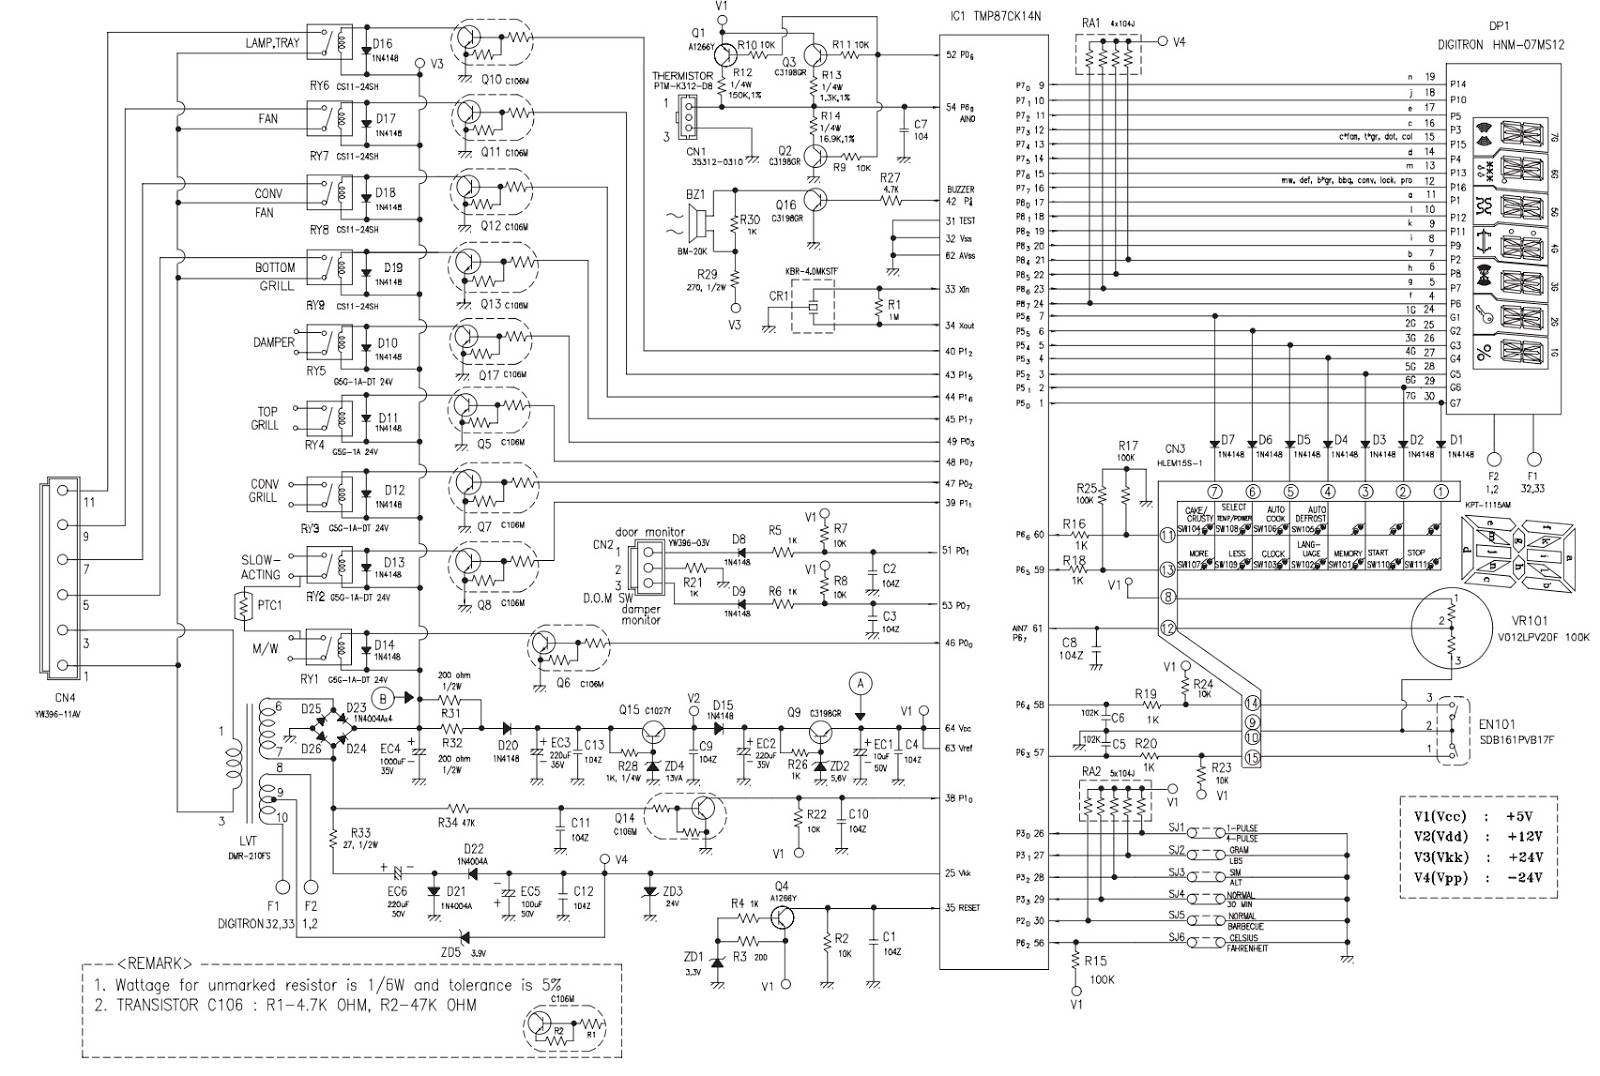 pcb%2Bcircuit%2Bdiagram s 4 bp blogspot com gul0tw 1ury vy2dijsyuoi microwave oven wiring diagram at readyjetset.co